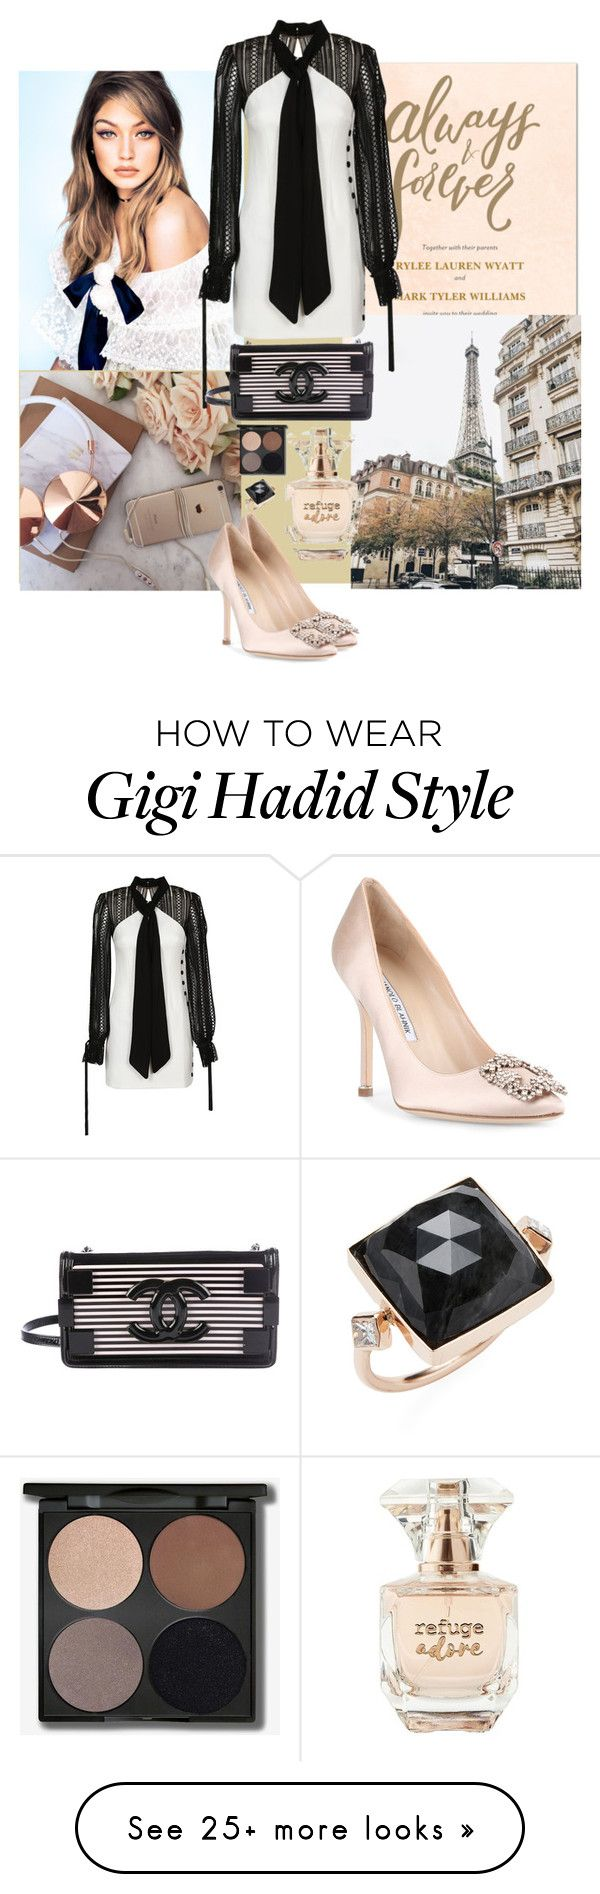 """Glam chic"" by rom-julia on Polyvore featuring self-portrait, Manolo Blahnik, Chanel, Refuge and Jacquie Aiche"